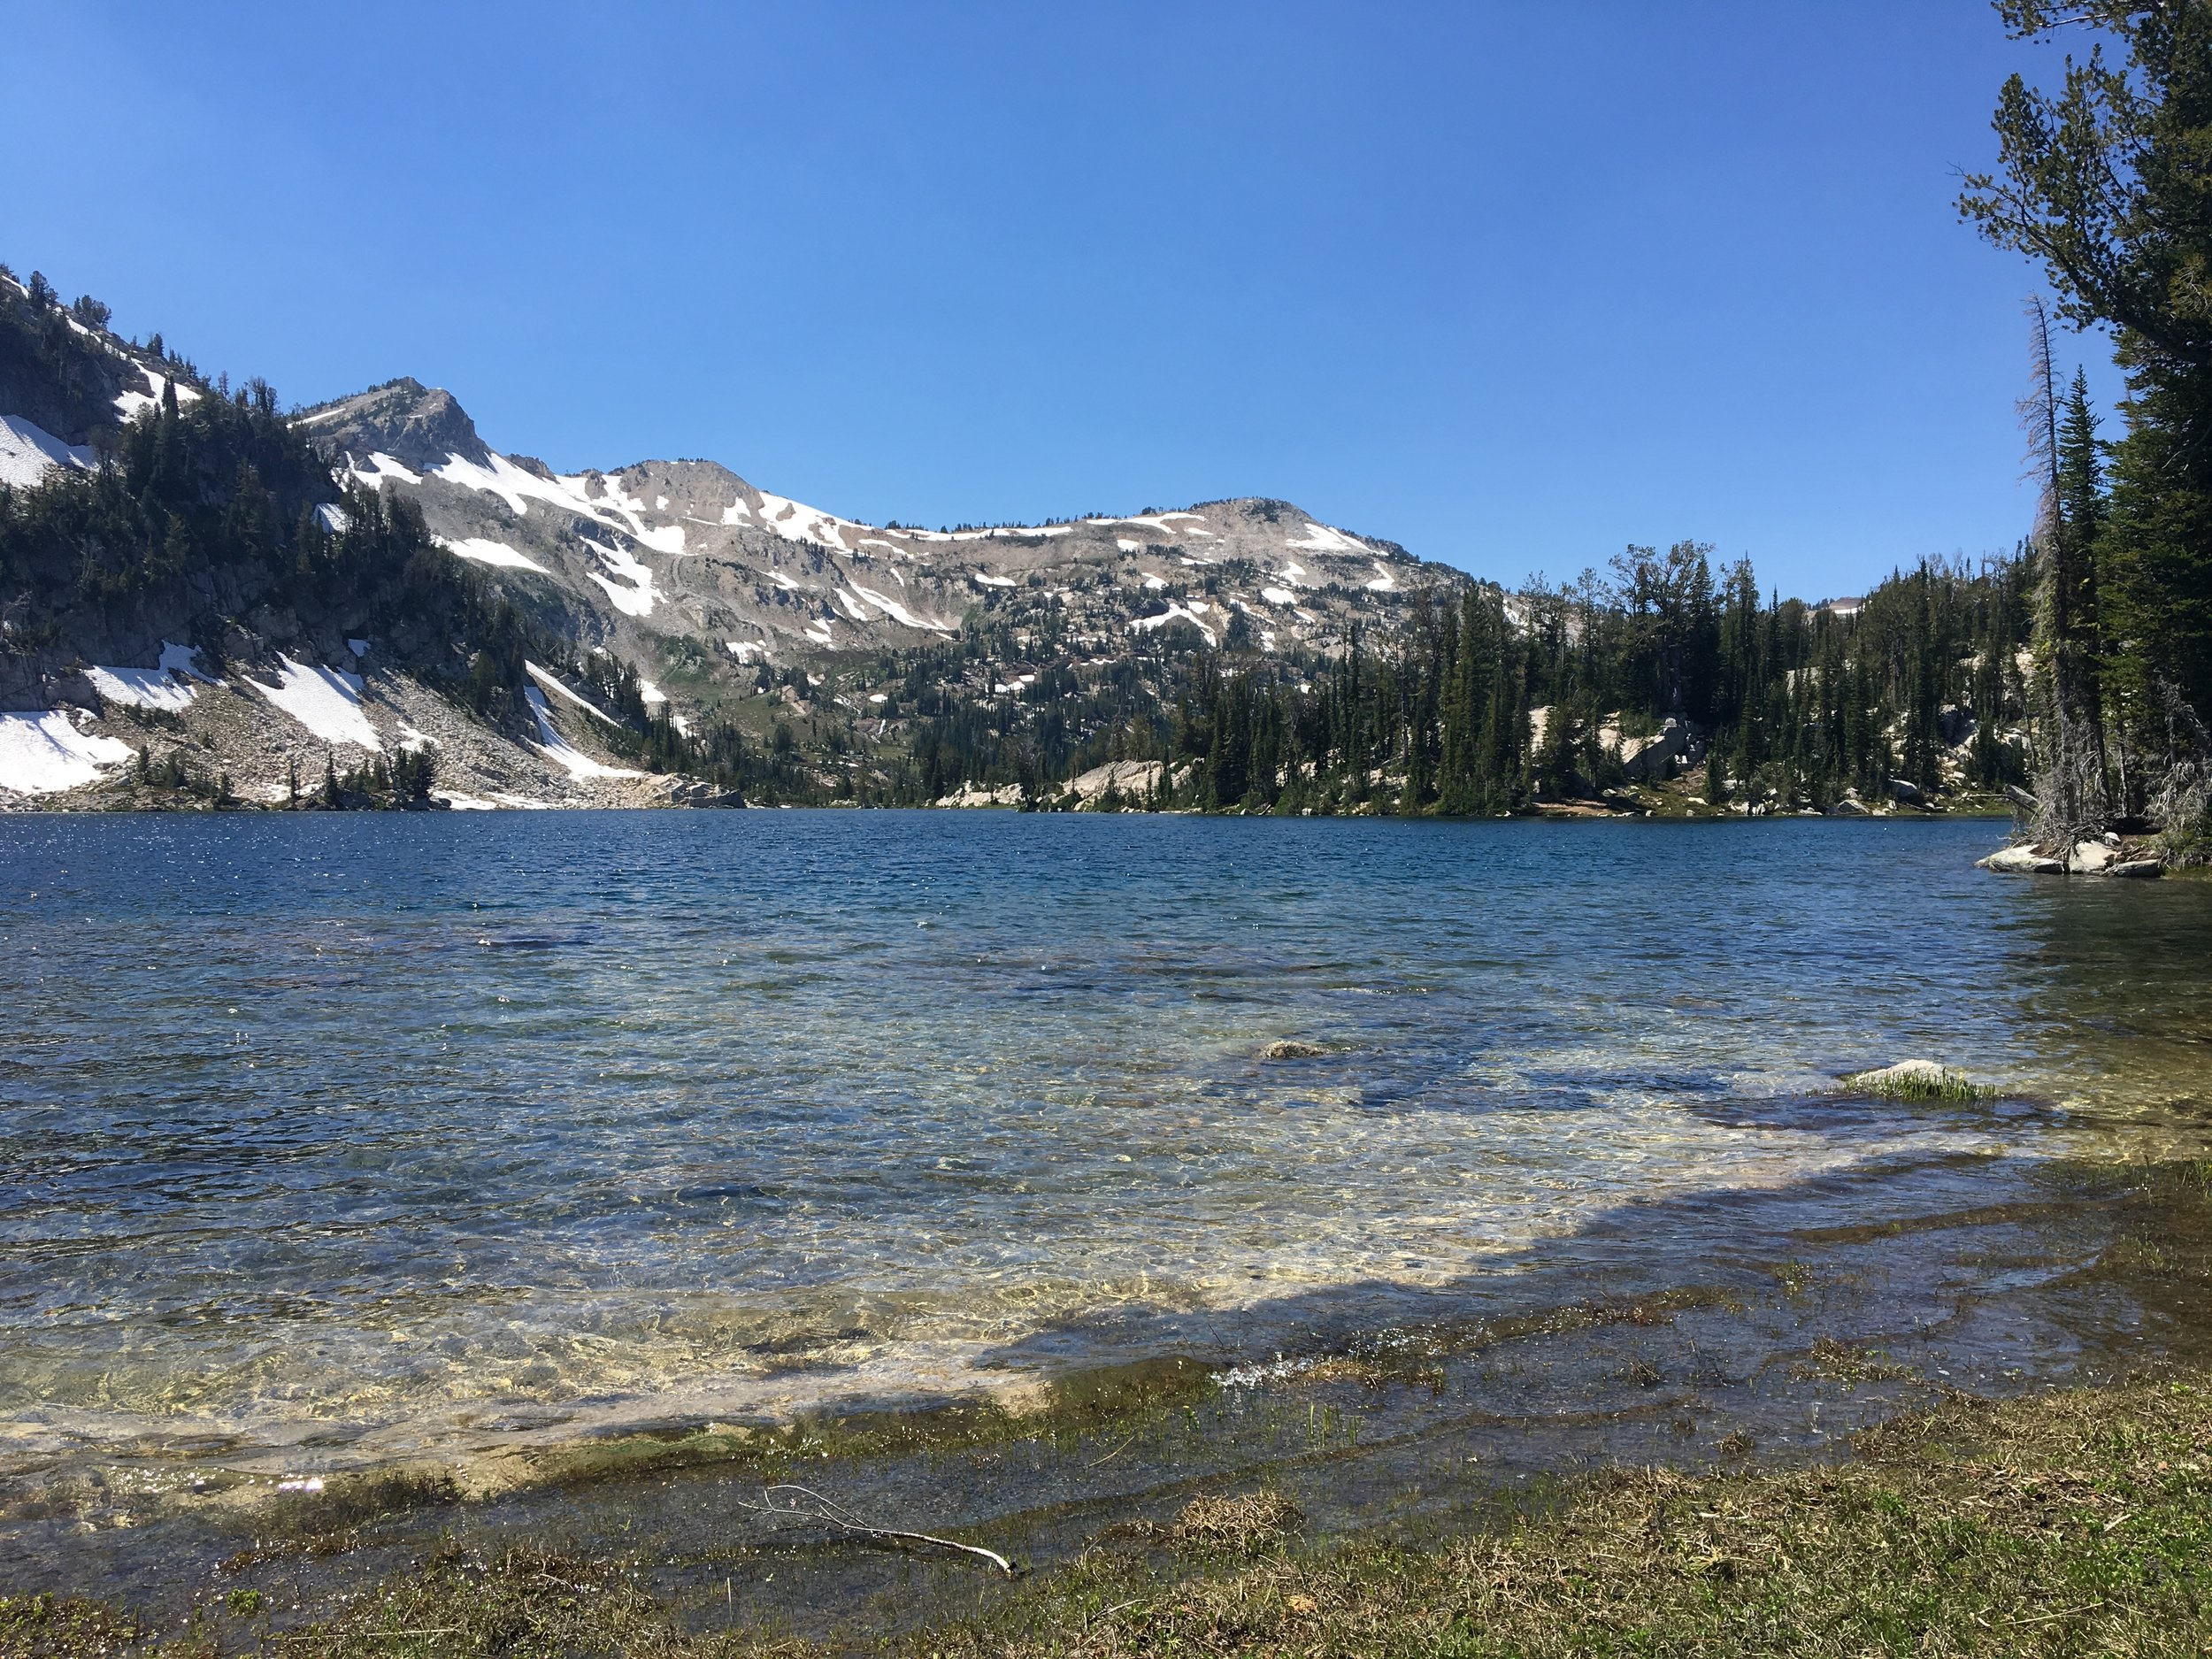 Mirror lake was dramatically colder than Horseshoe lake.